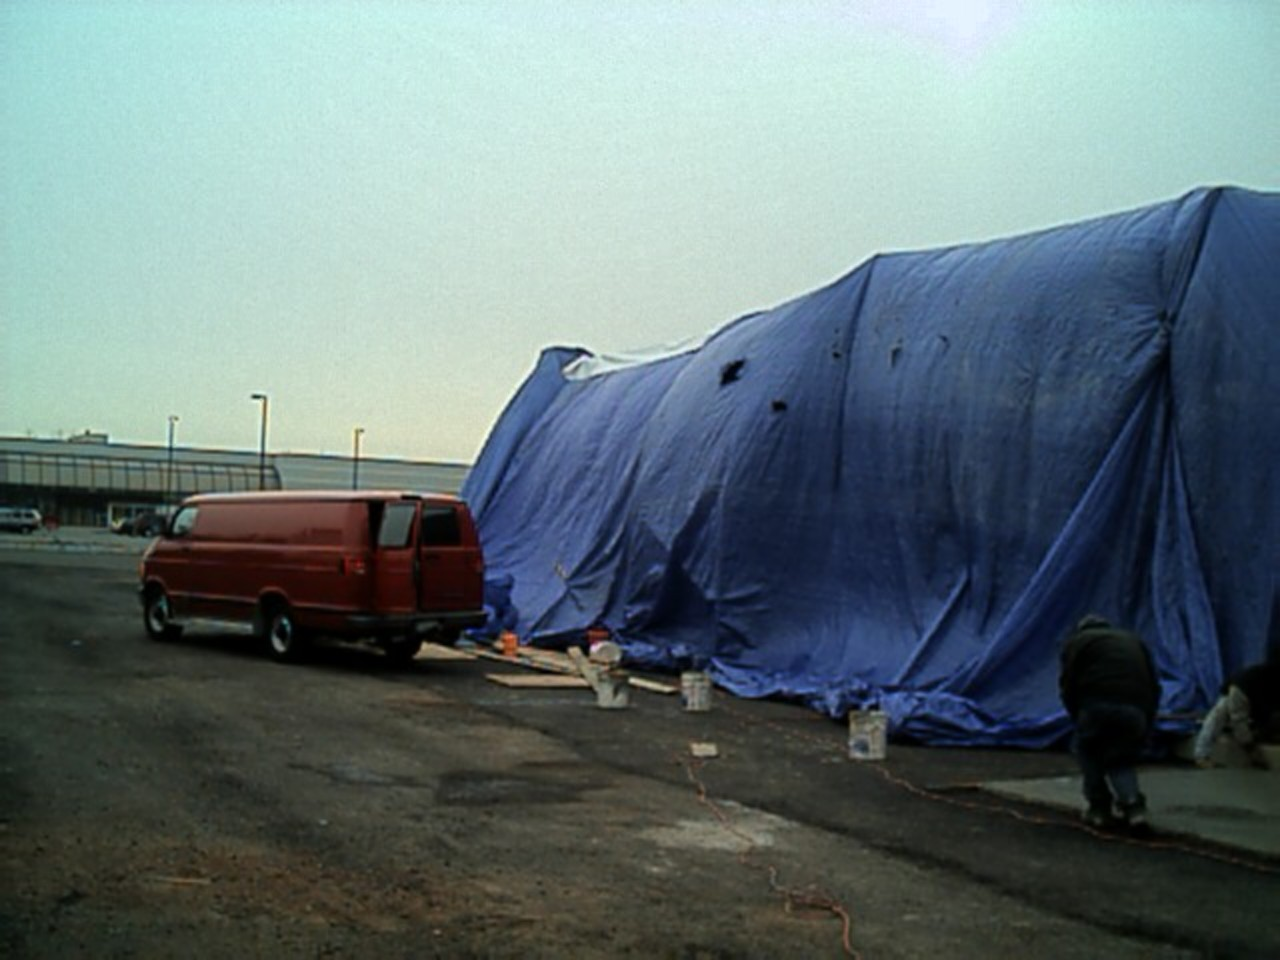 Another view of how massive the tarped area is, and my Dodge van got in this picture too!.